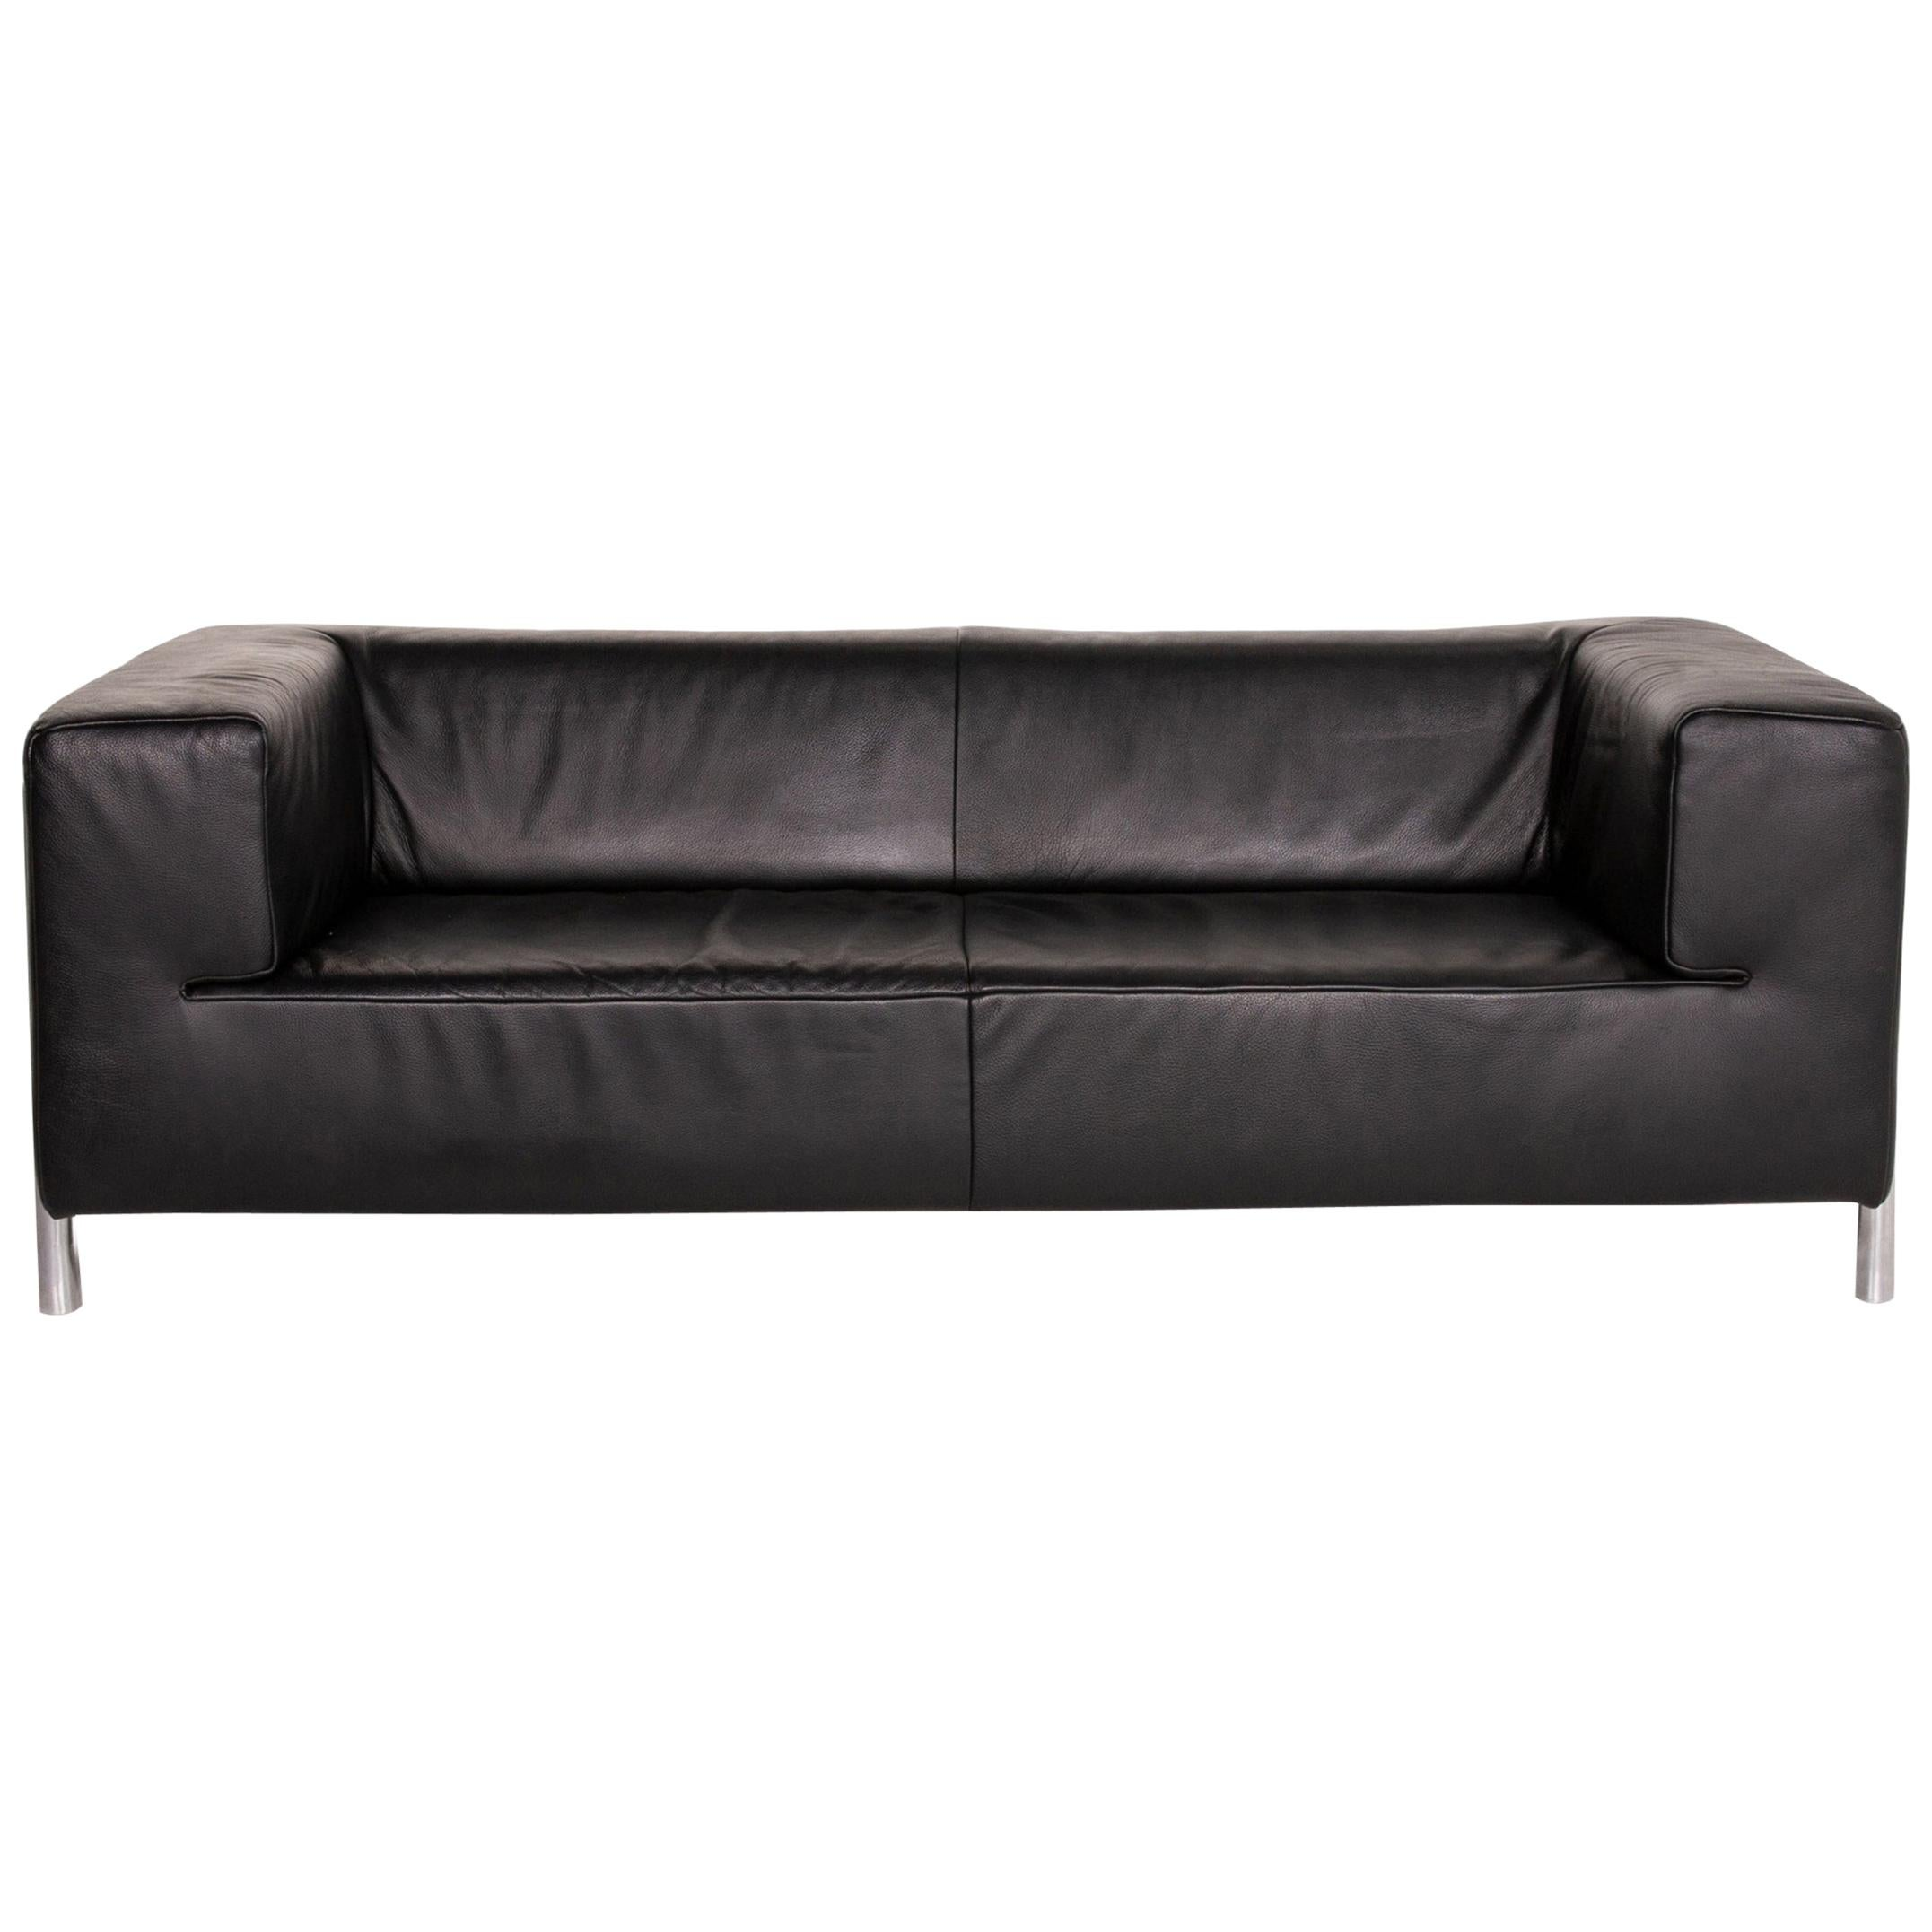 Koinor Genesis Leather Sofa Black Two-Seat Couch